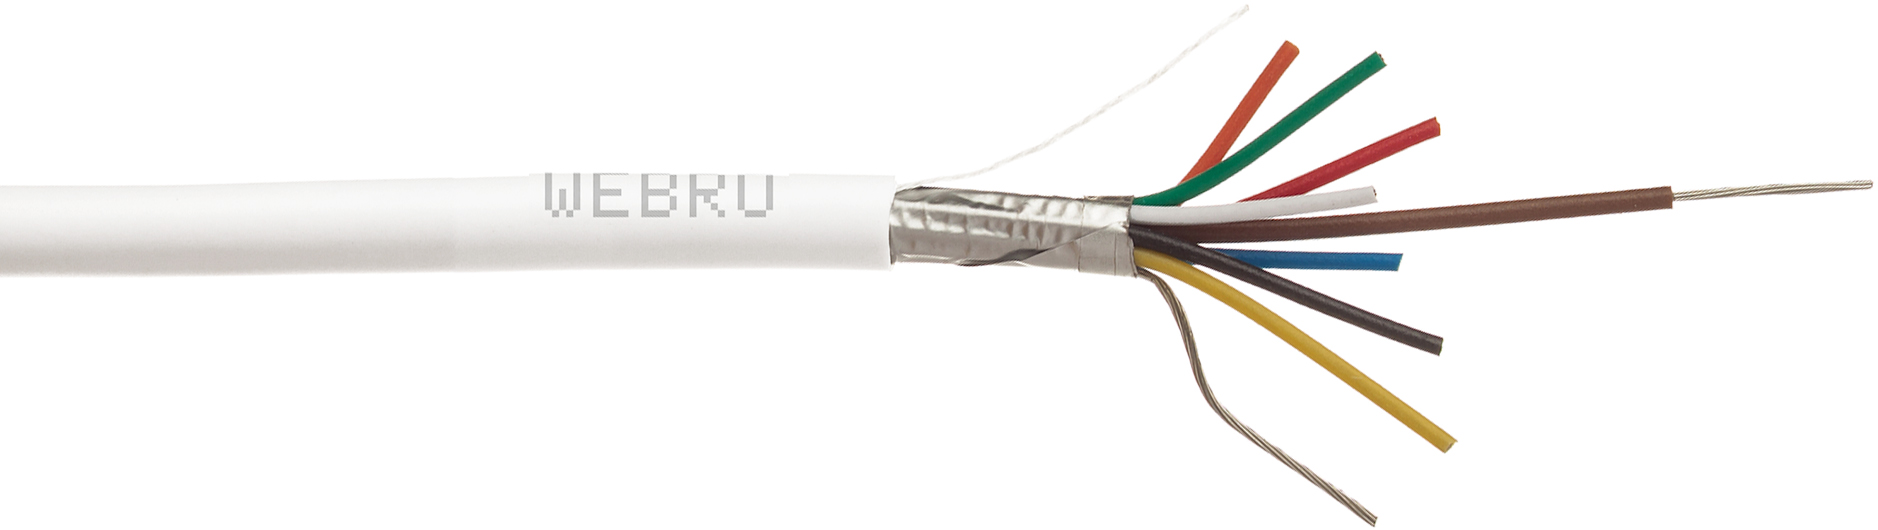 Webro Screened Alarm Cable, screened alarm cable, 8 core screened alarm cable